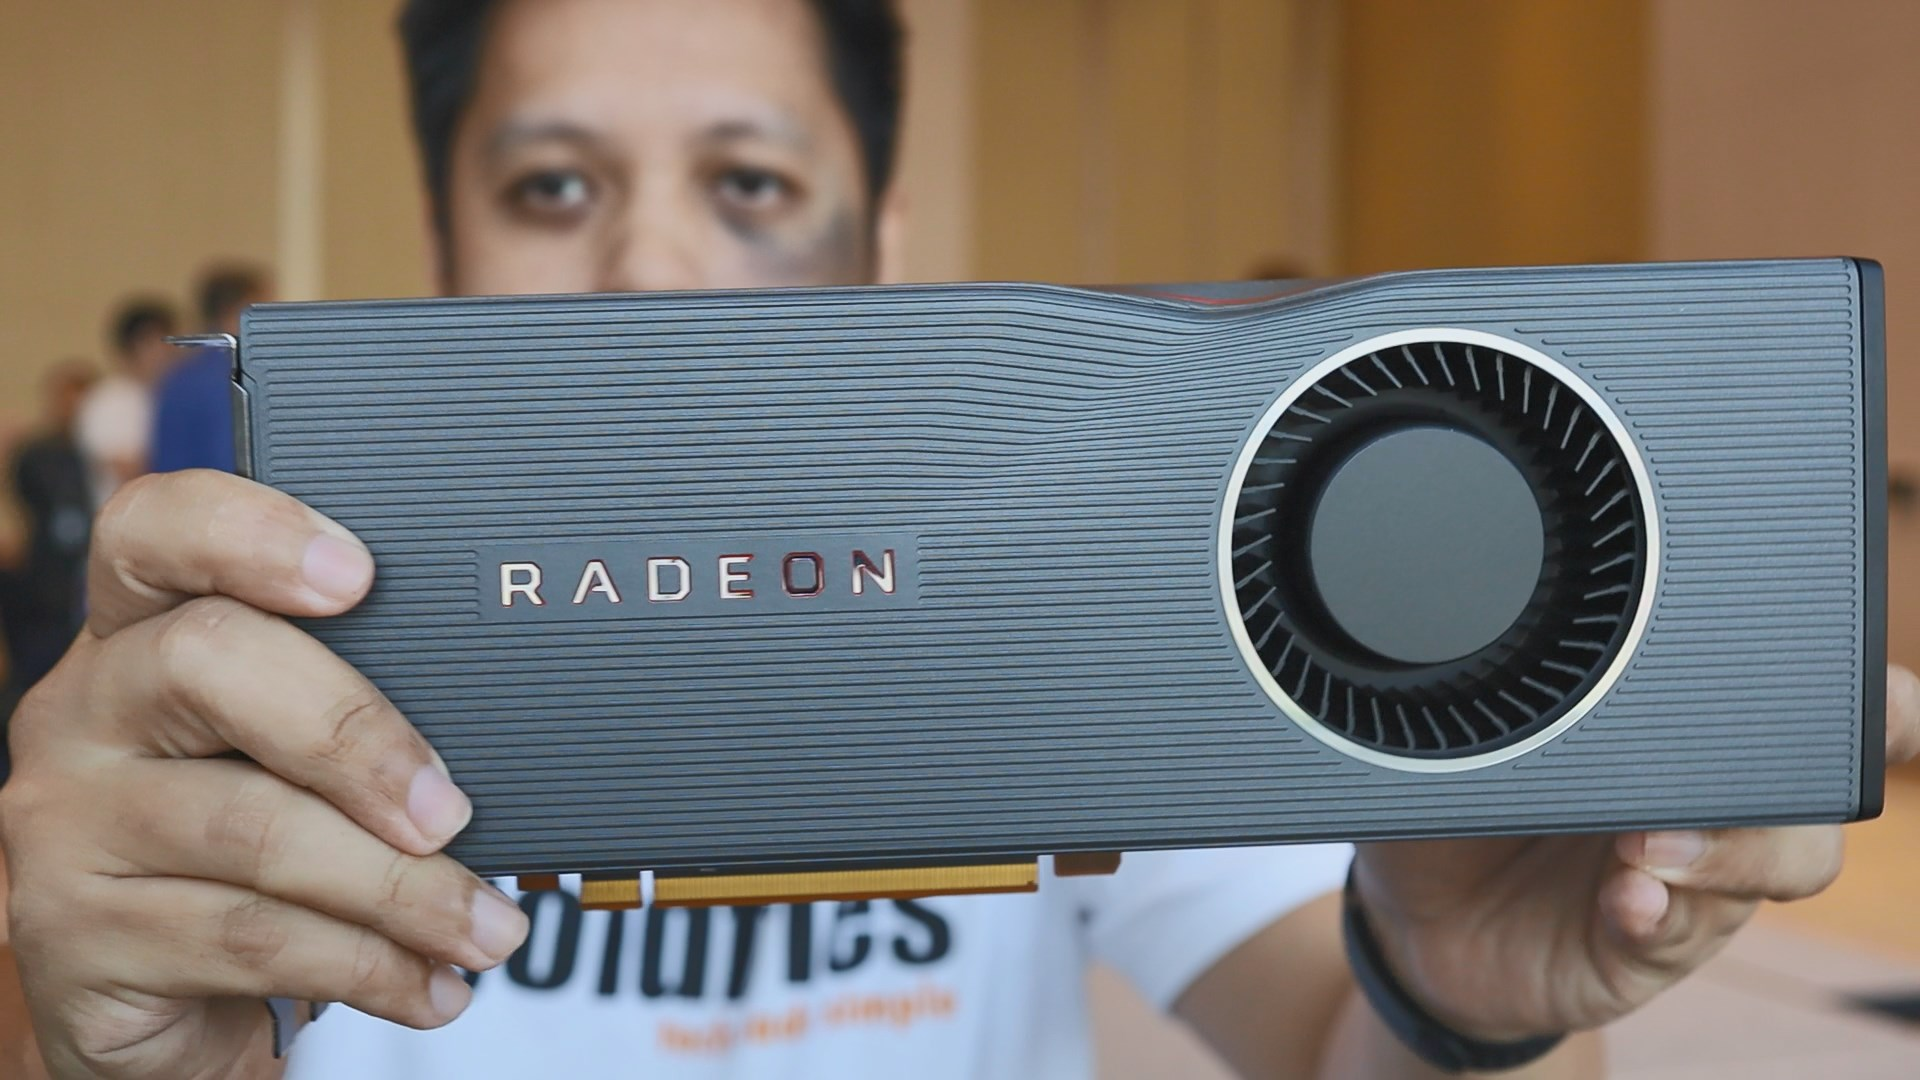 Up-close and personal with AMD Radeon RX 5700 XT GPU 9